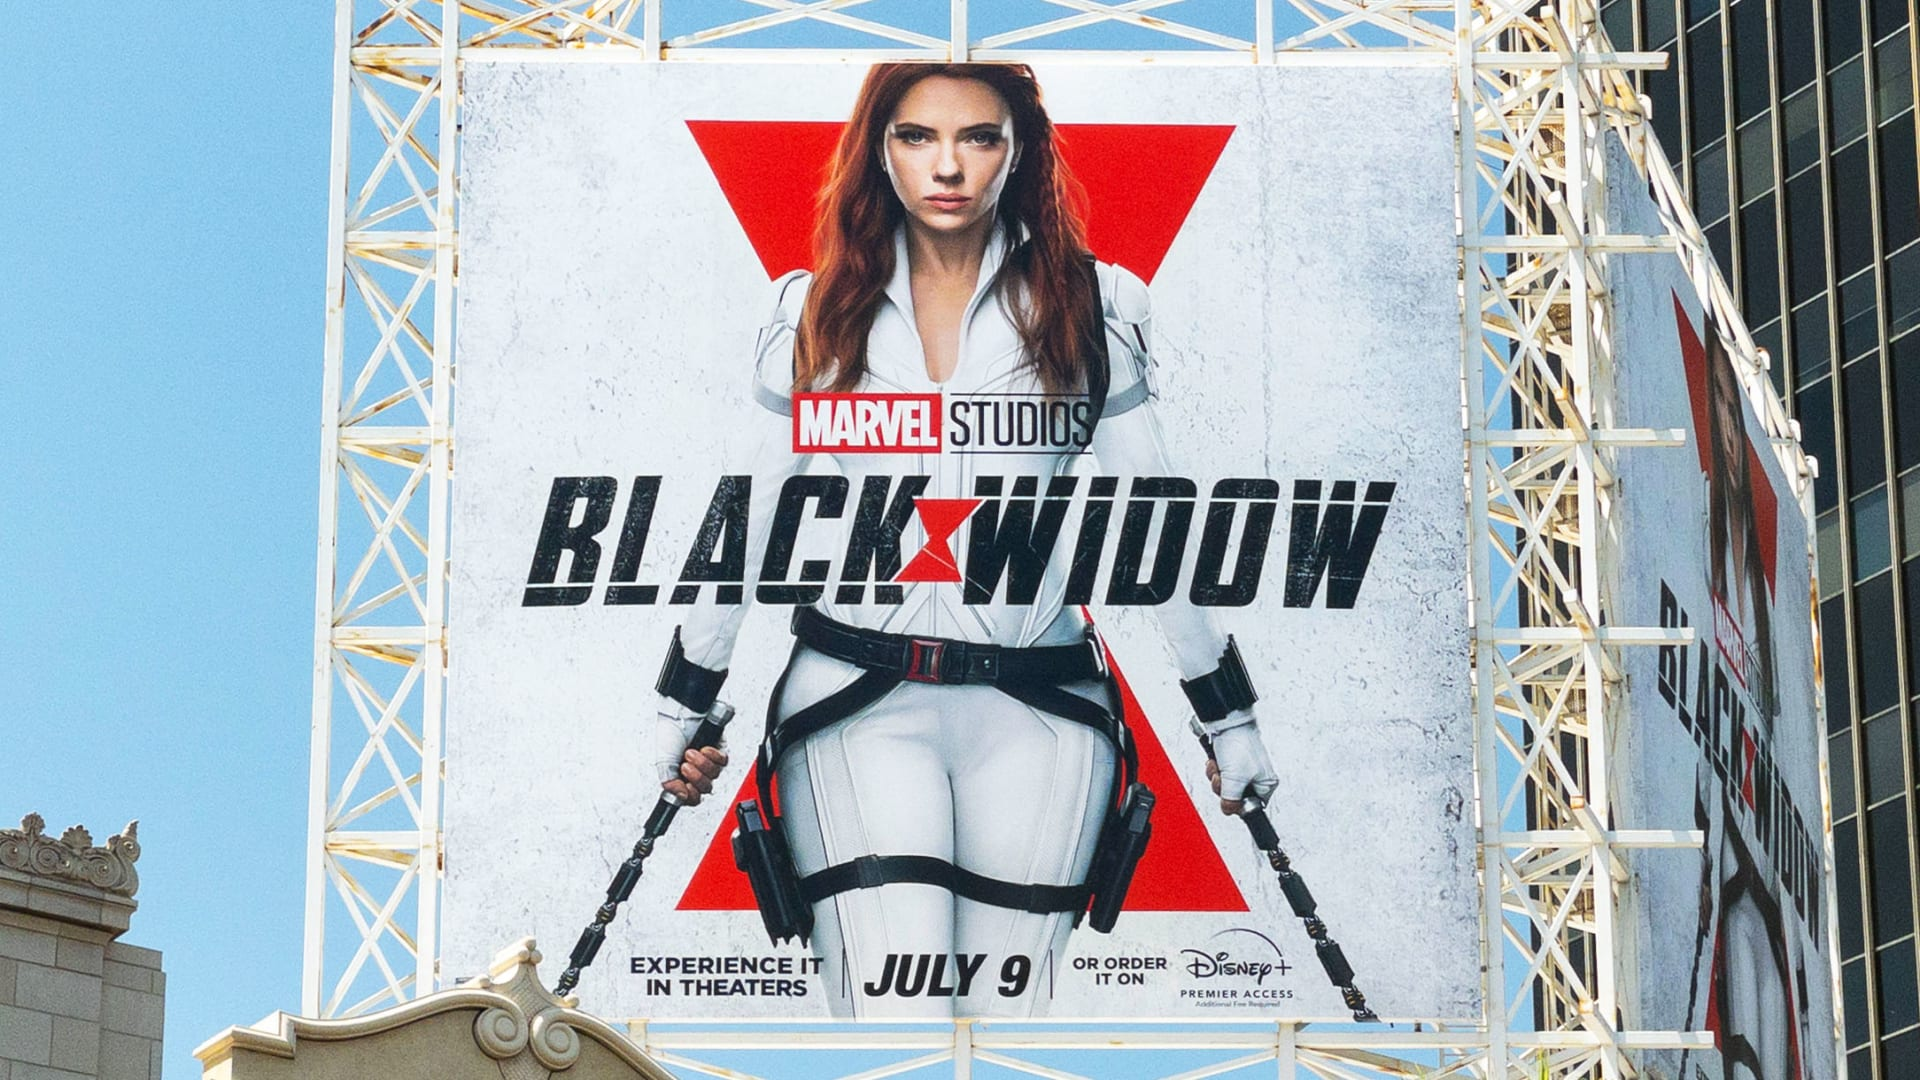 Disney's Response to Scarlett Johansson's 'Black Widow' Lawsuit Is an Example of the 1 Thing No Company Should Ever Do